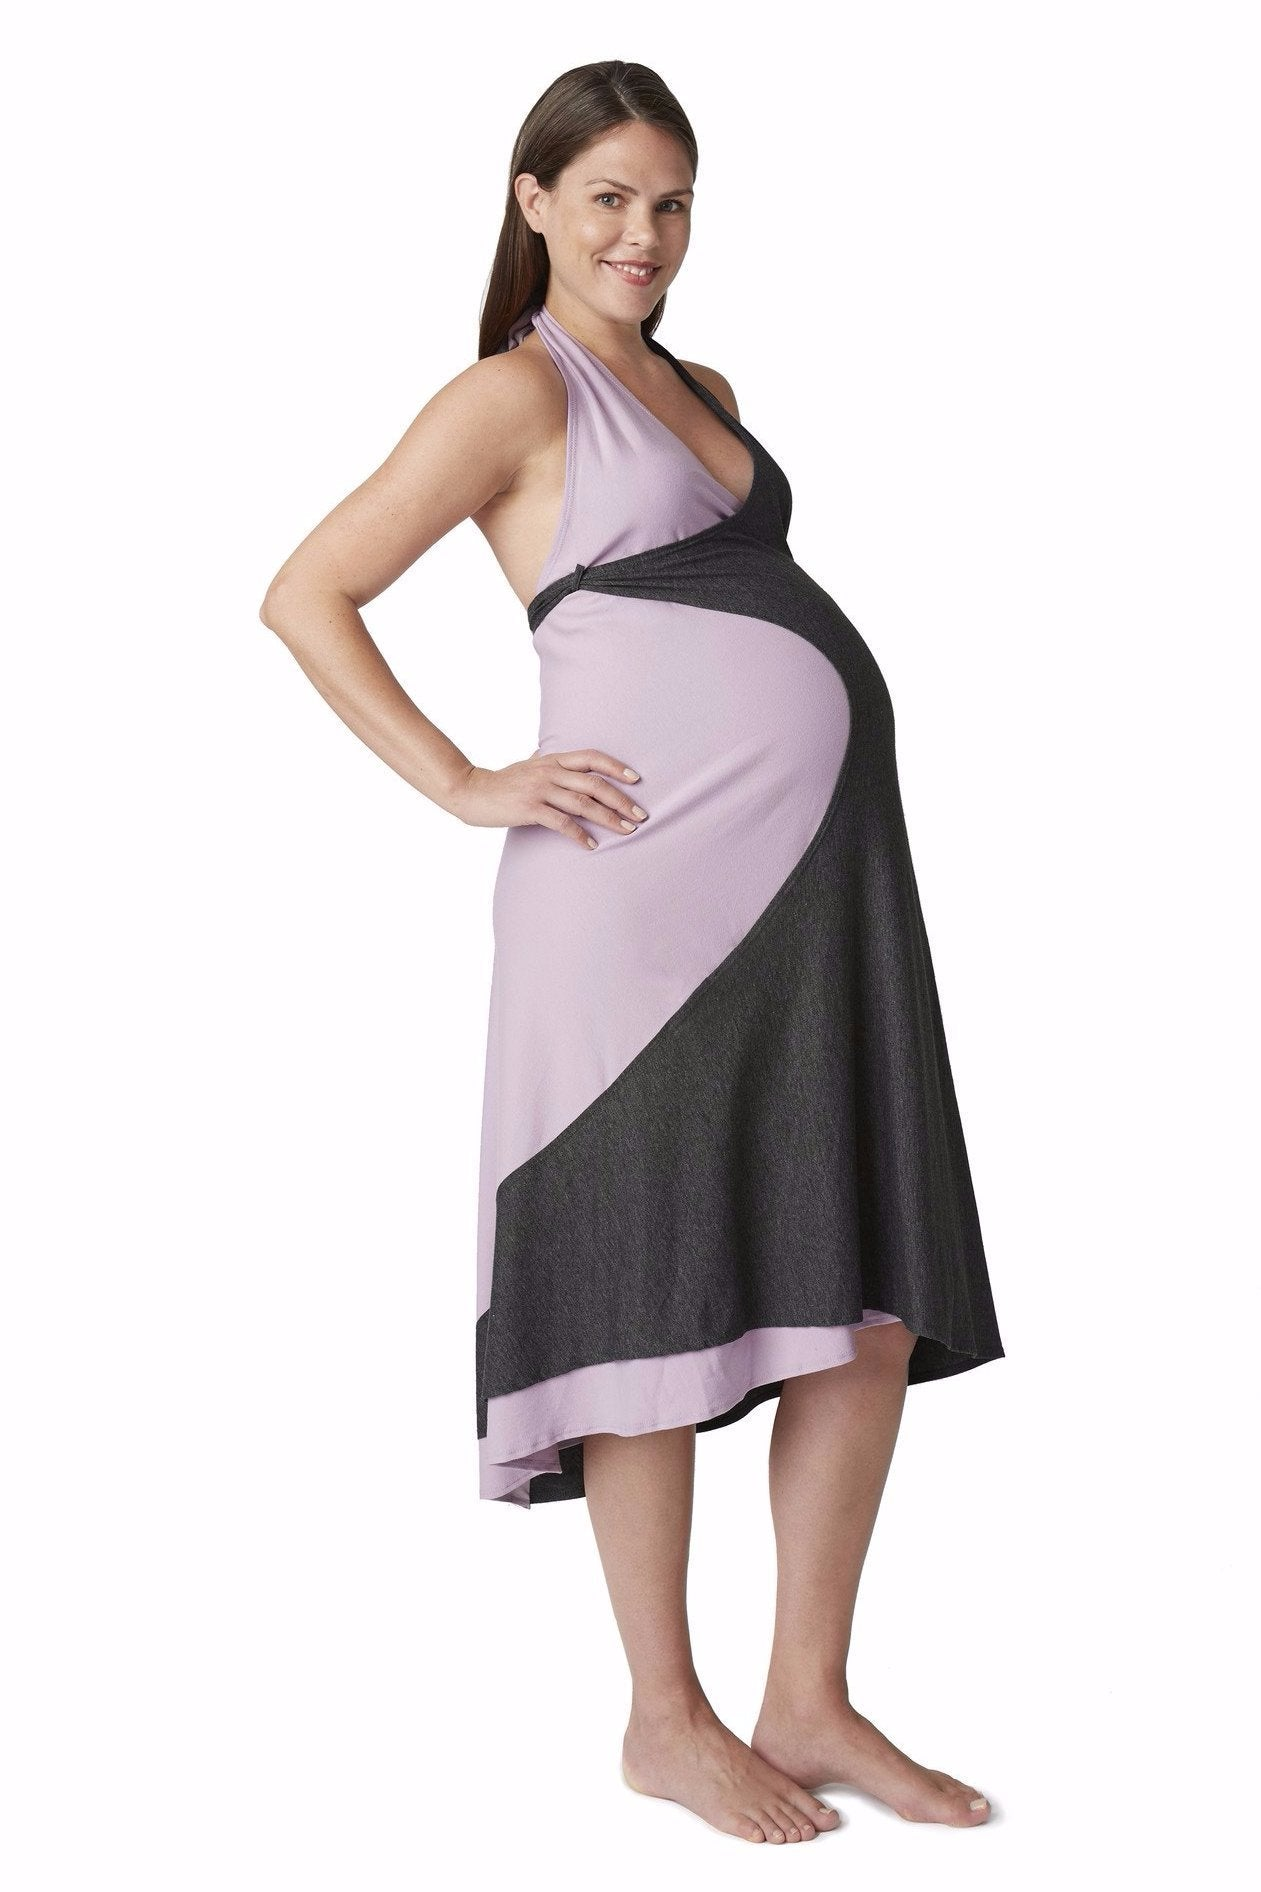 Maternity birth and nursing in one dress by pretty pushers a single dress for maternity birth and breastfeeding ombrellifo Image collections